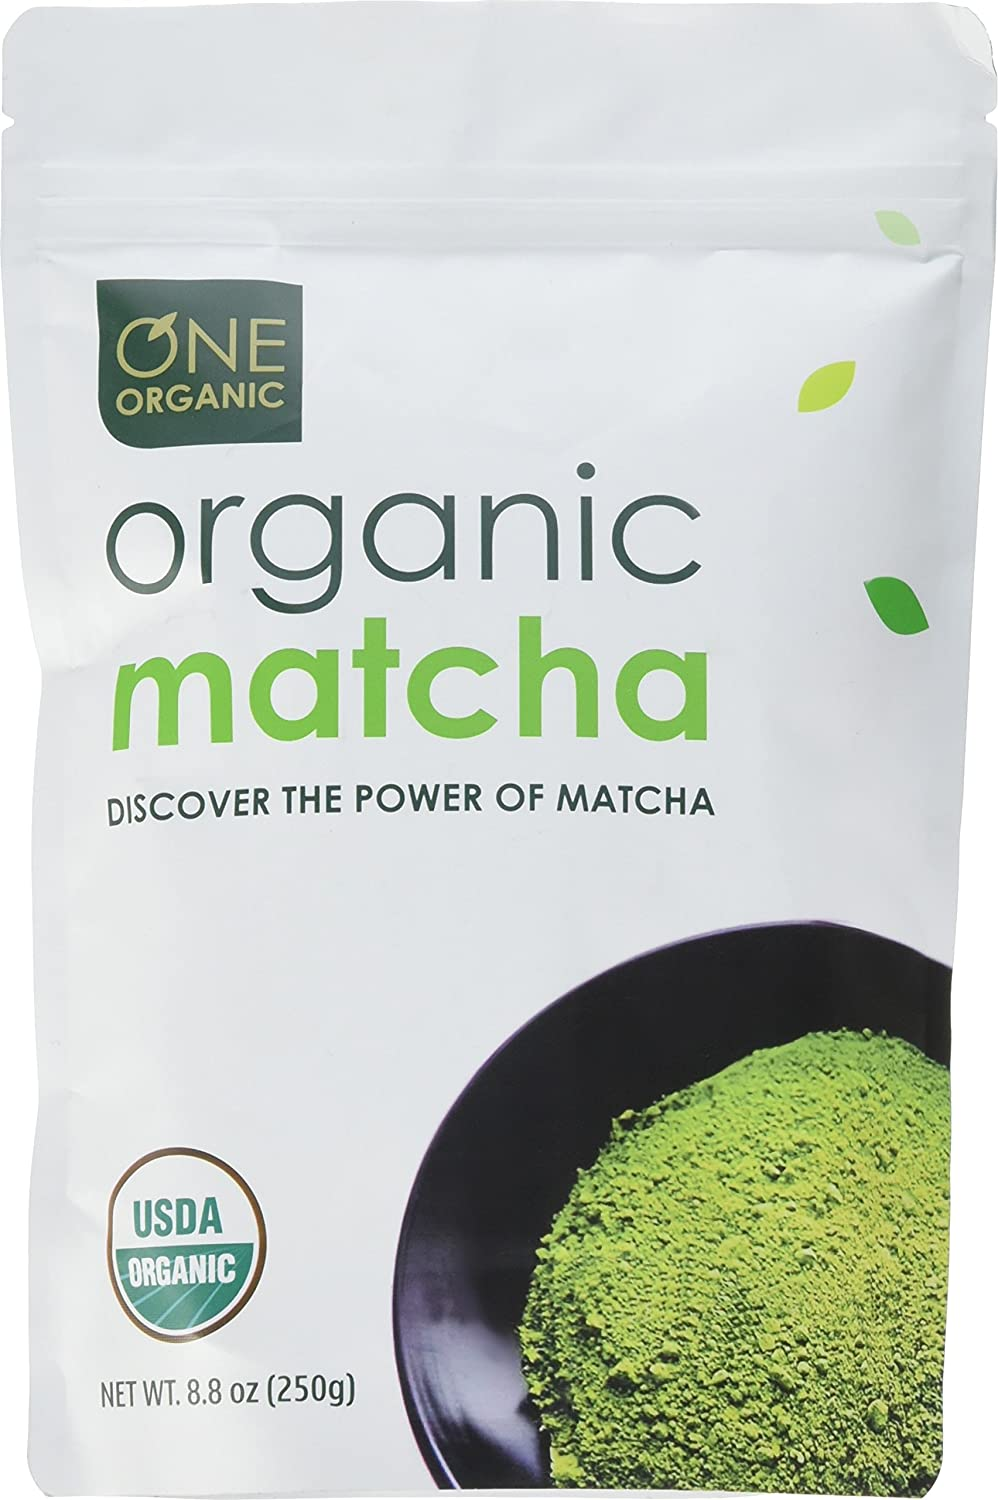 ONE ORGANIC Matcha Green Tea Powder (250g) - USDA Certified Organic SYNCHKG125483